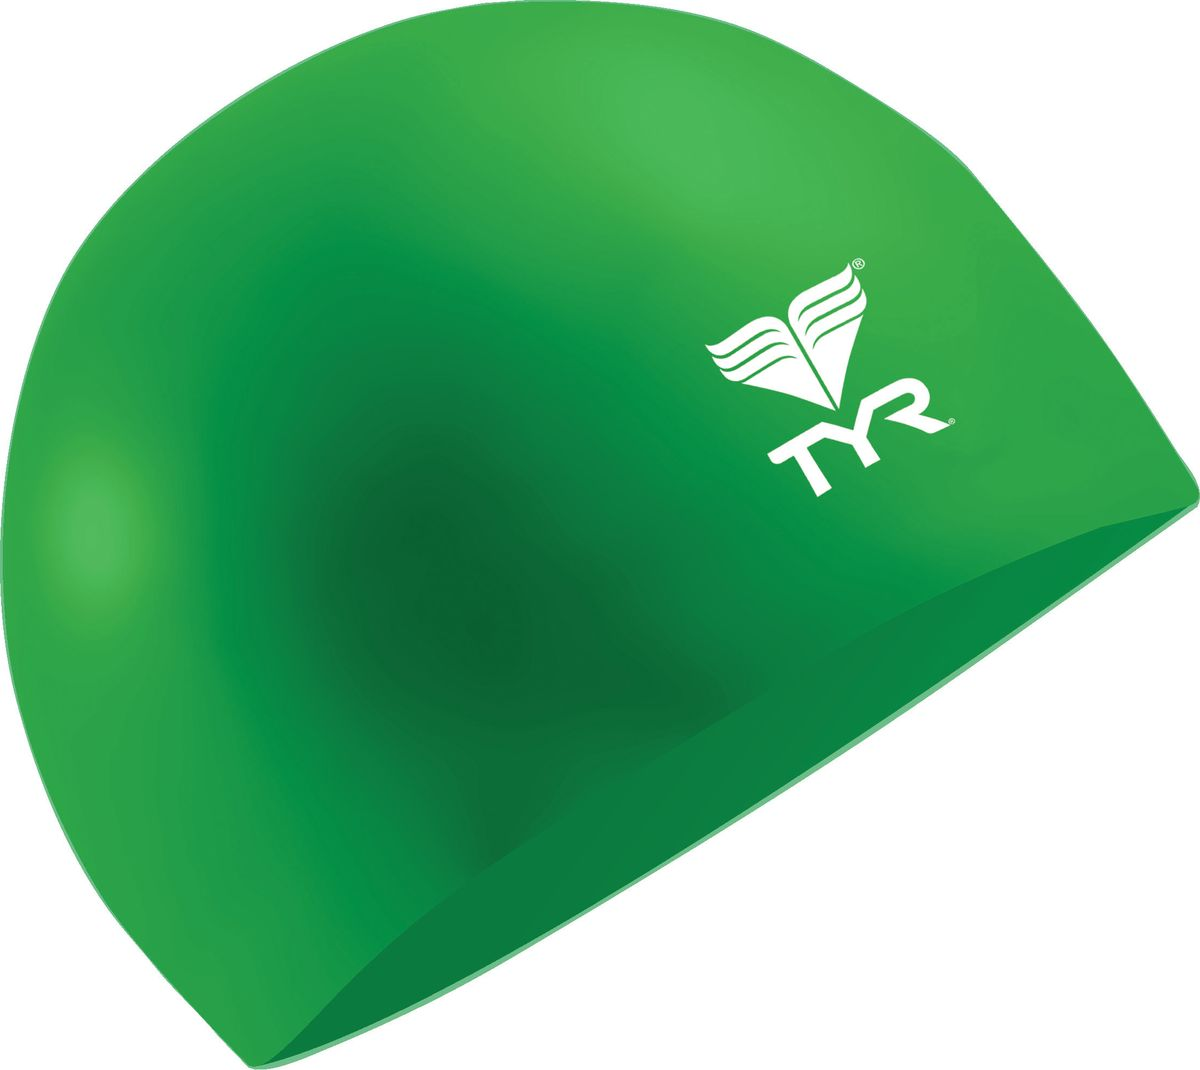 Шапочка для плавания Tyr Latex Swim Cap, цвет: зеленый. LCL шапочка для плавания tyr latex swim cap цвет зеленый lcl